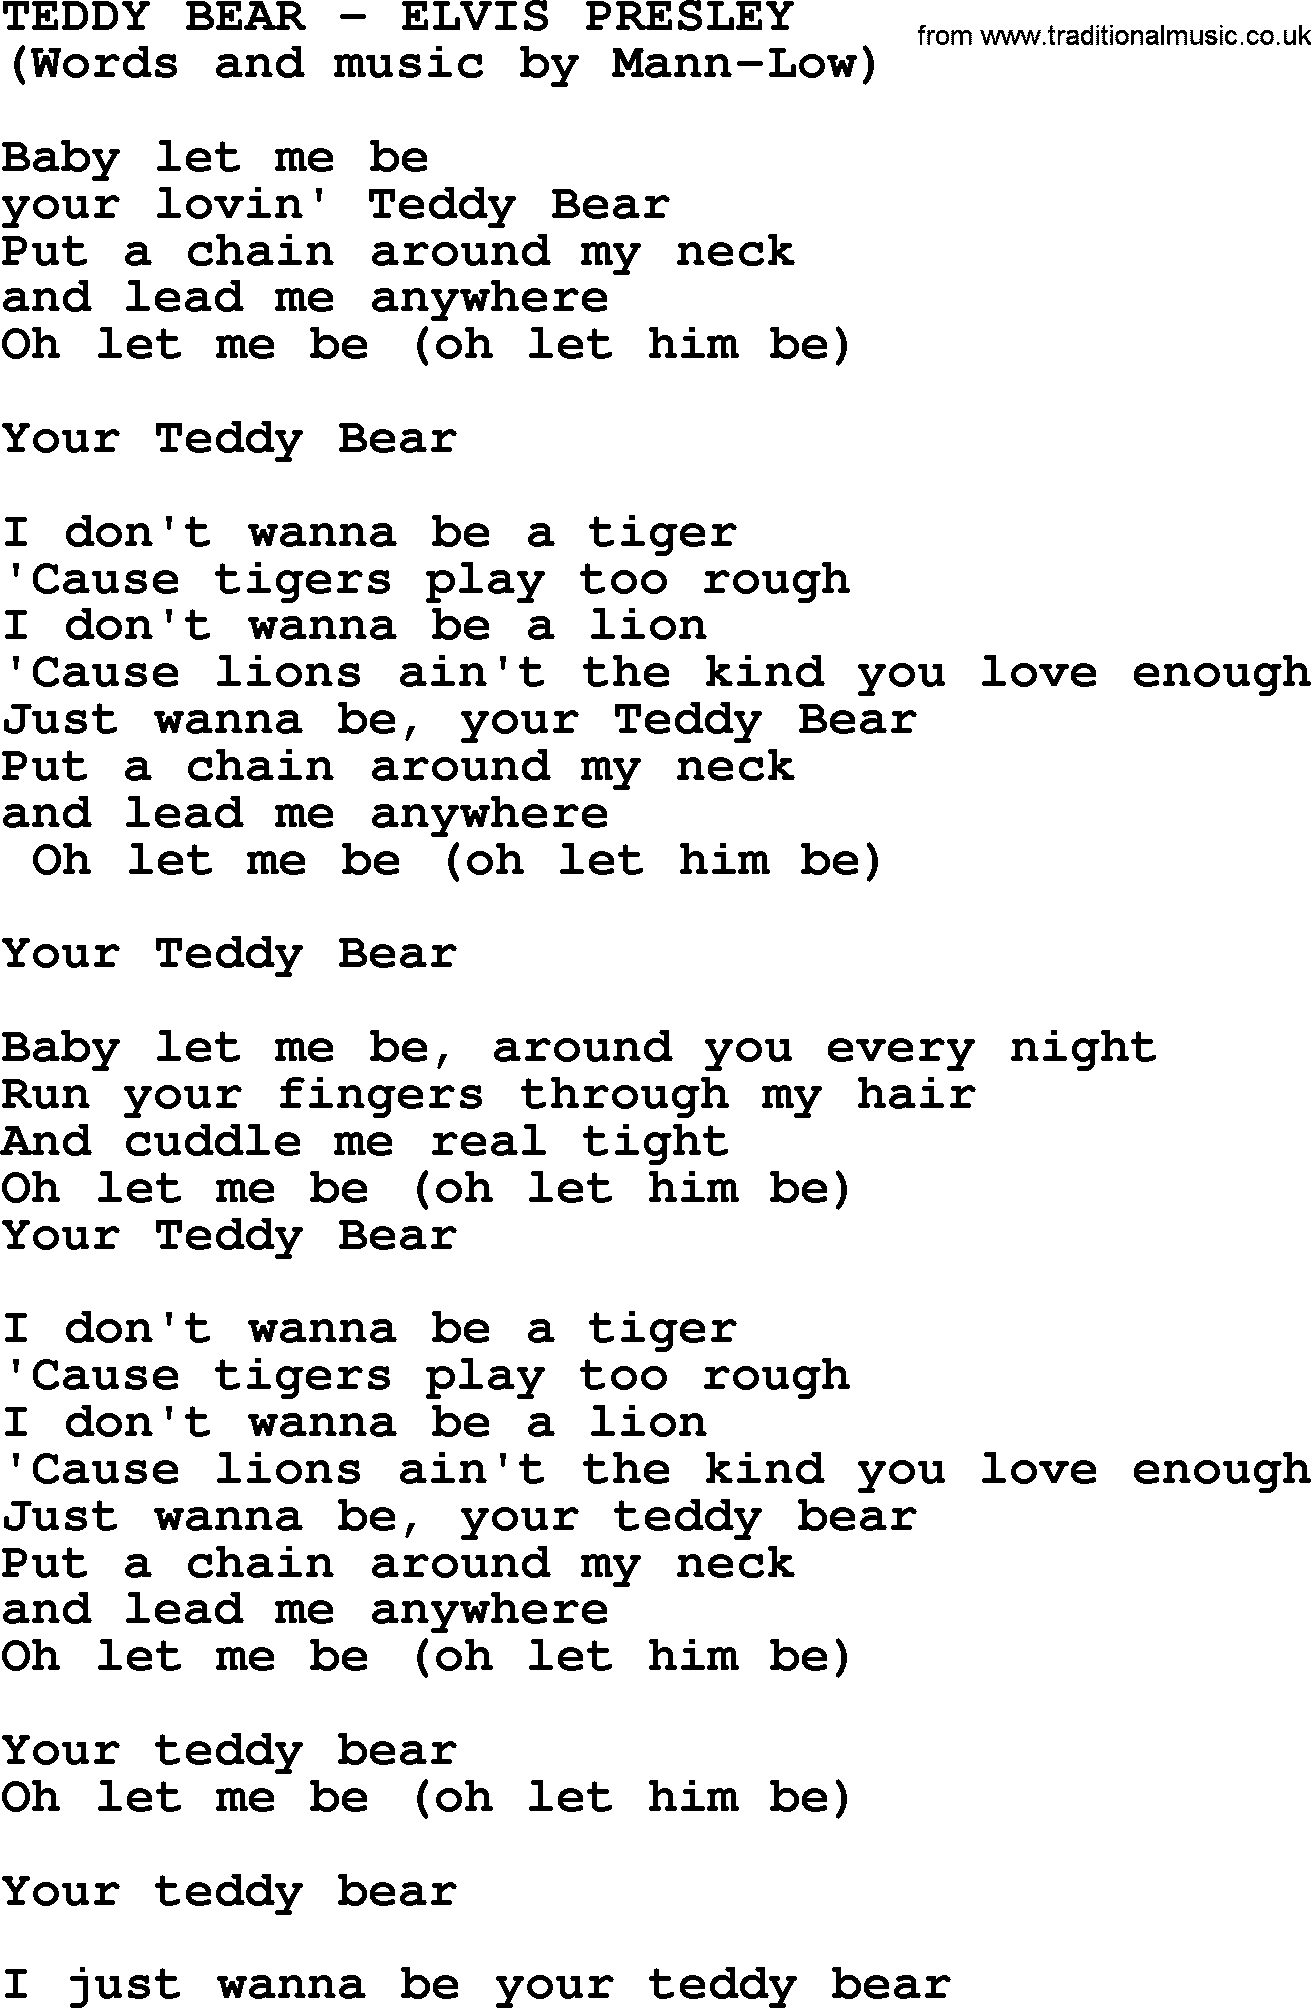 Teddy Bear By Elvis Presley Lyrics